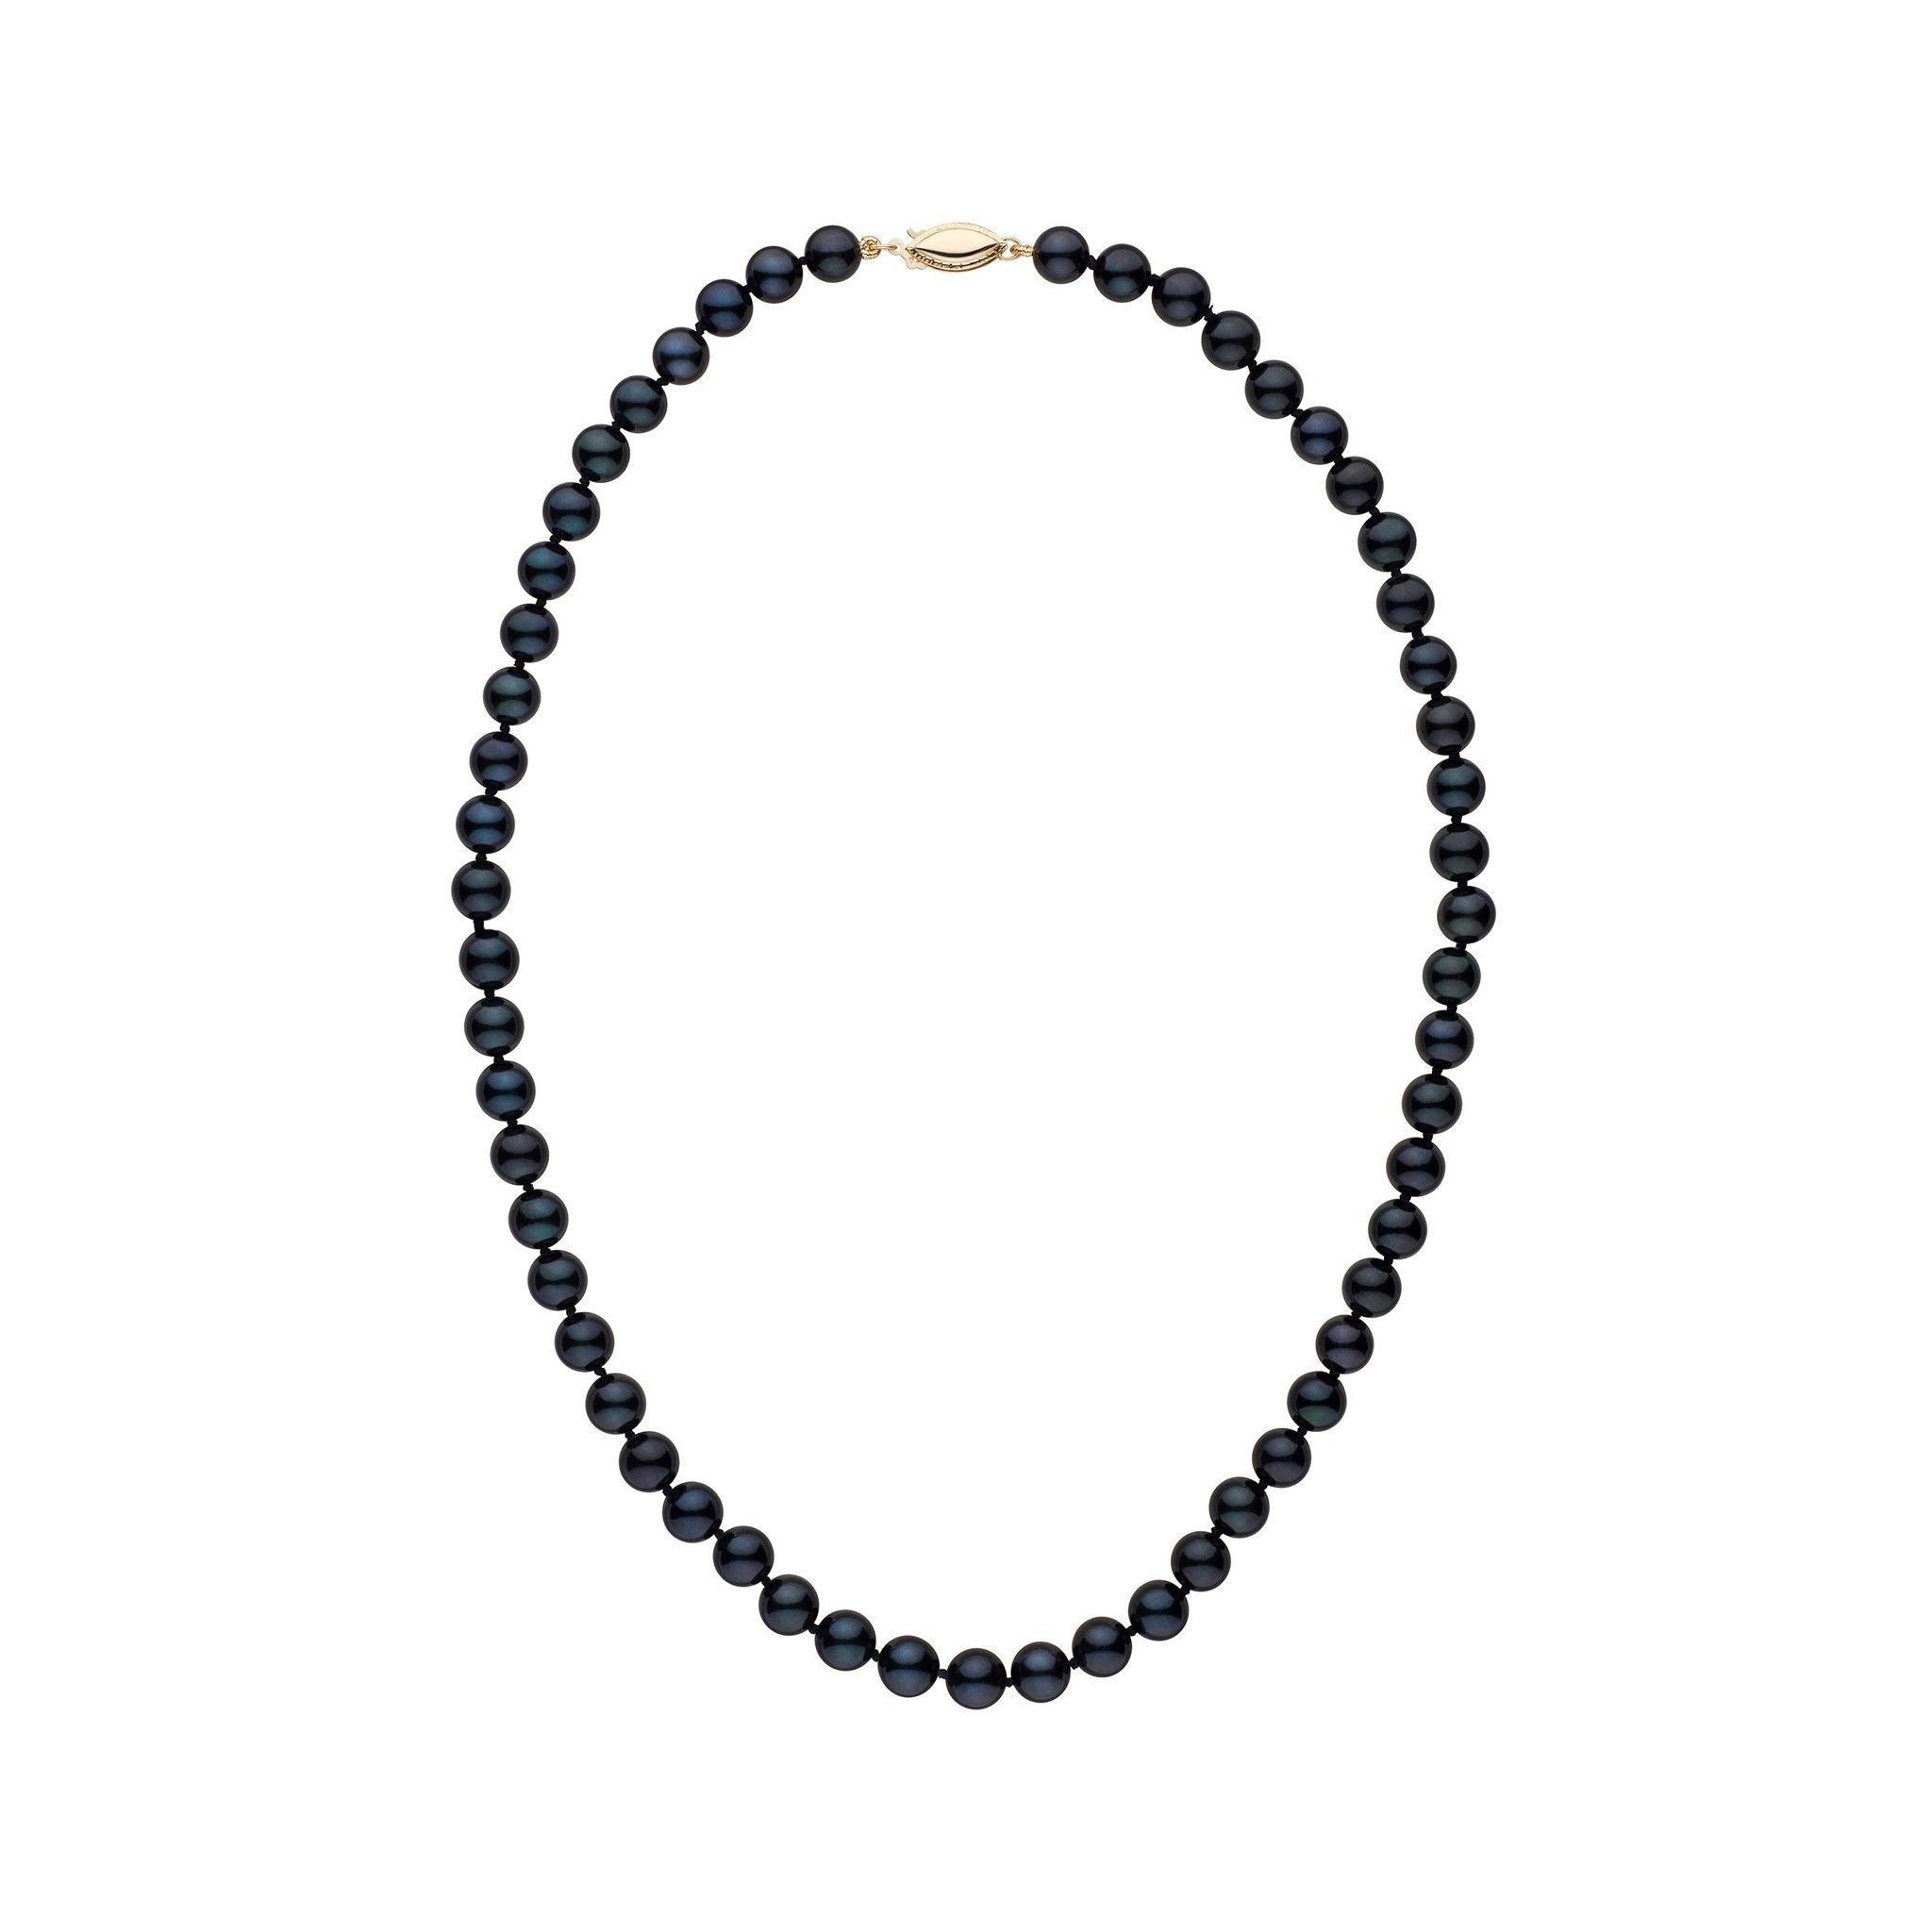 6.5-7.0 mm 16 Inch AA+ Black Akoya Pearl Necklace